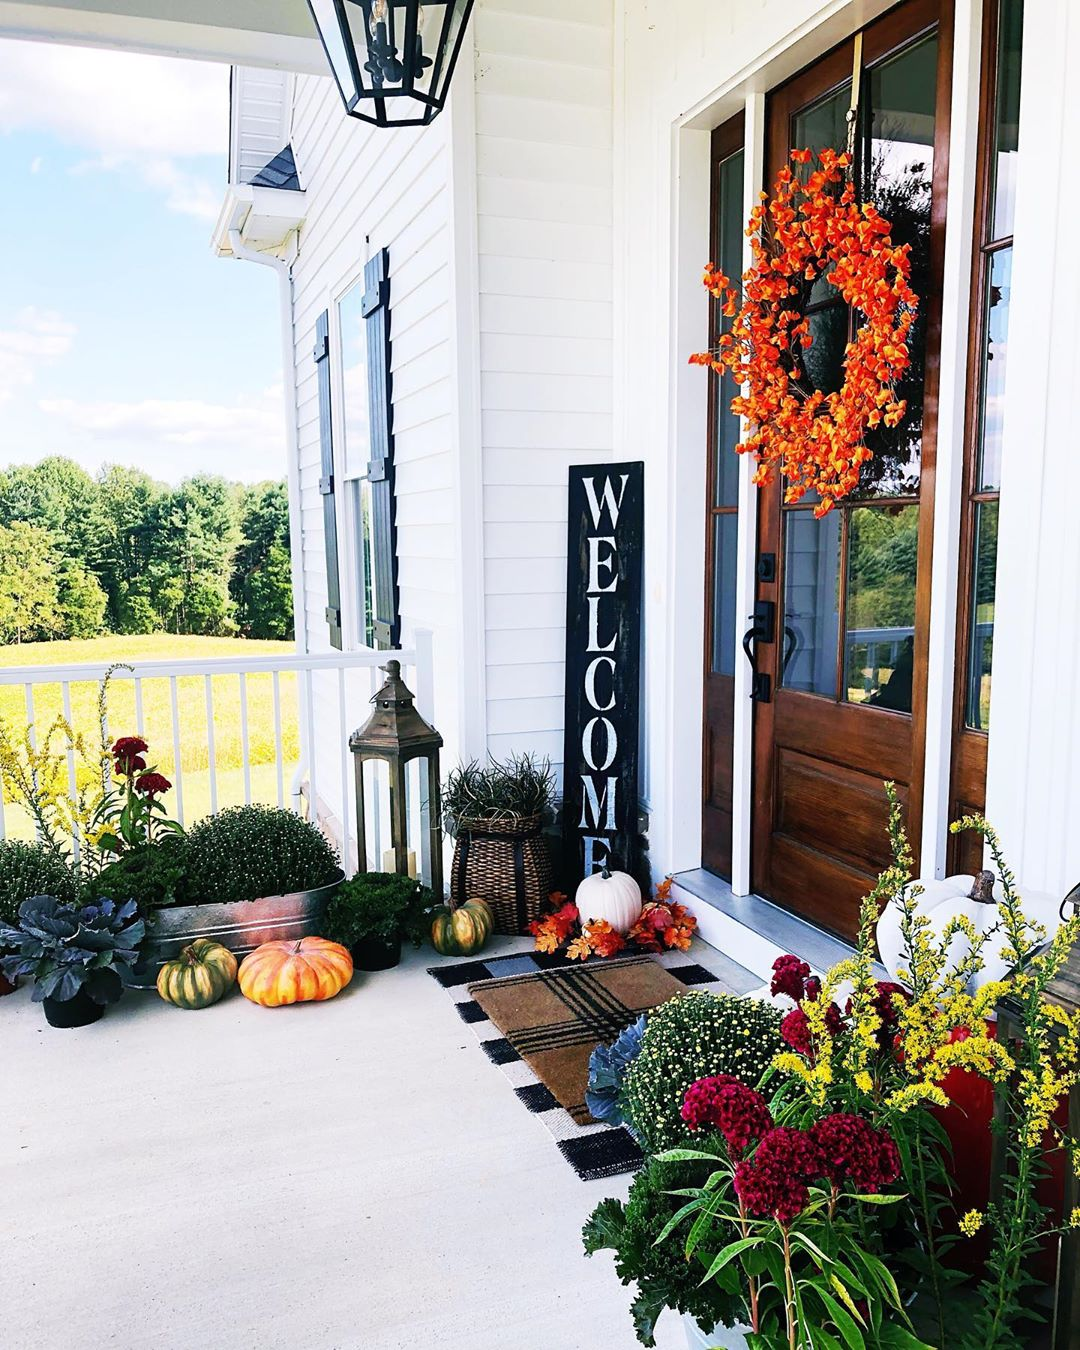 Use Your Home's Colors to Enhance Your Fall Porch Decor